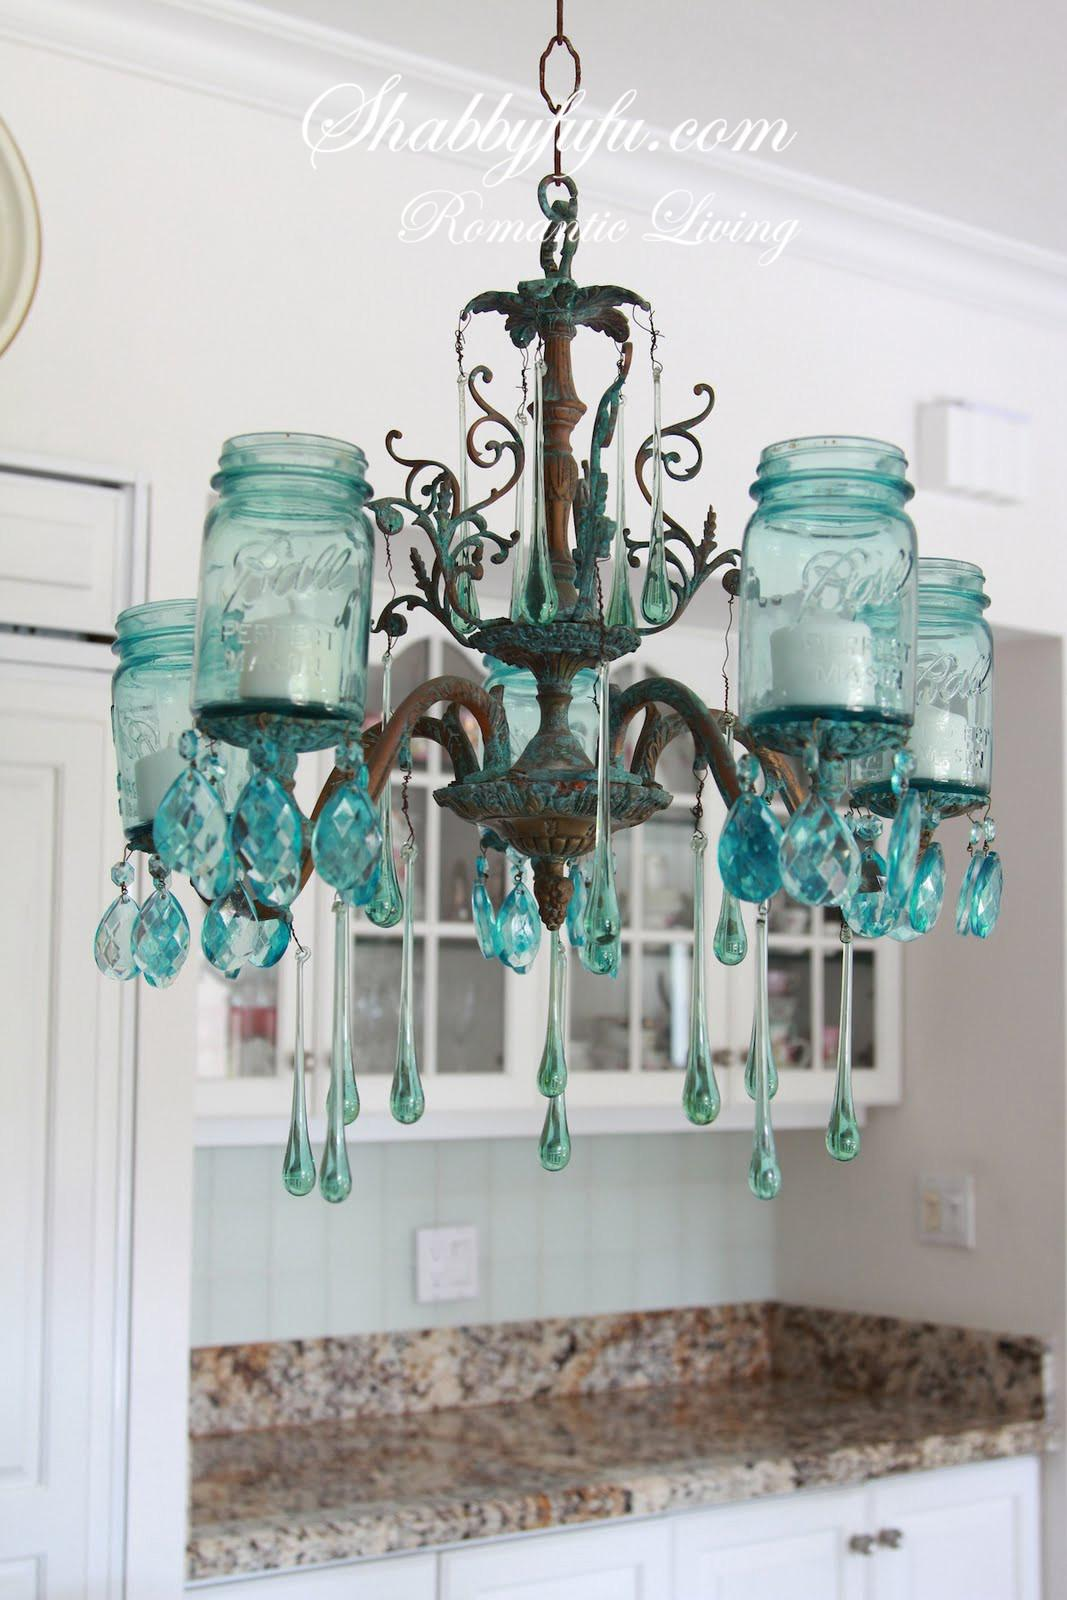 Make Farmhouse Mason Jar Chandelier Shabbyfufu